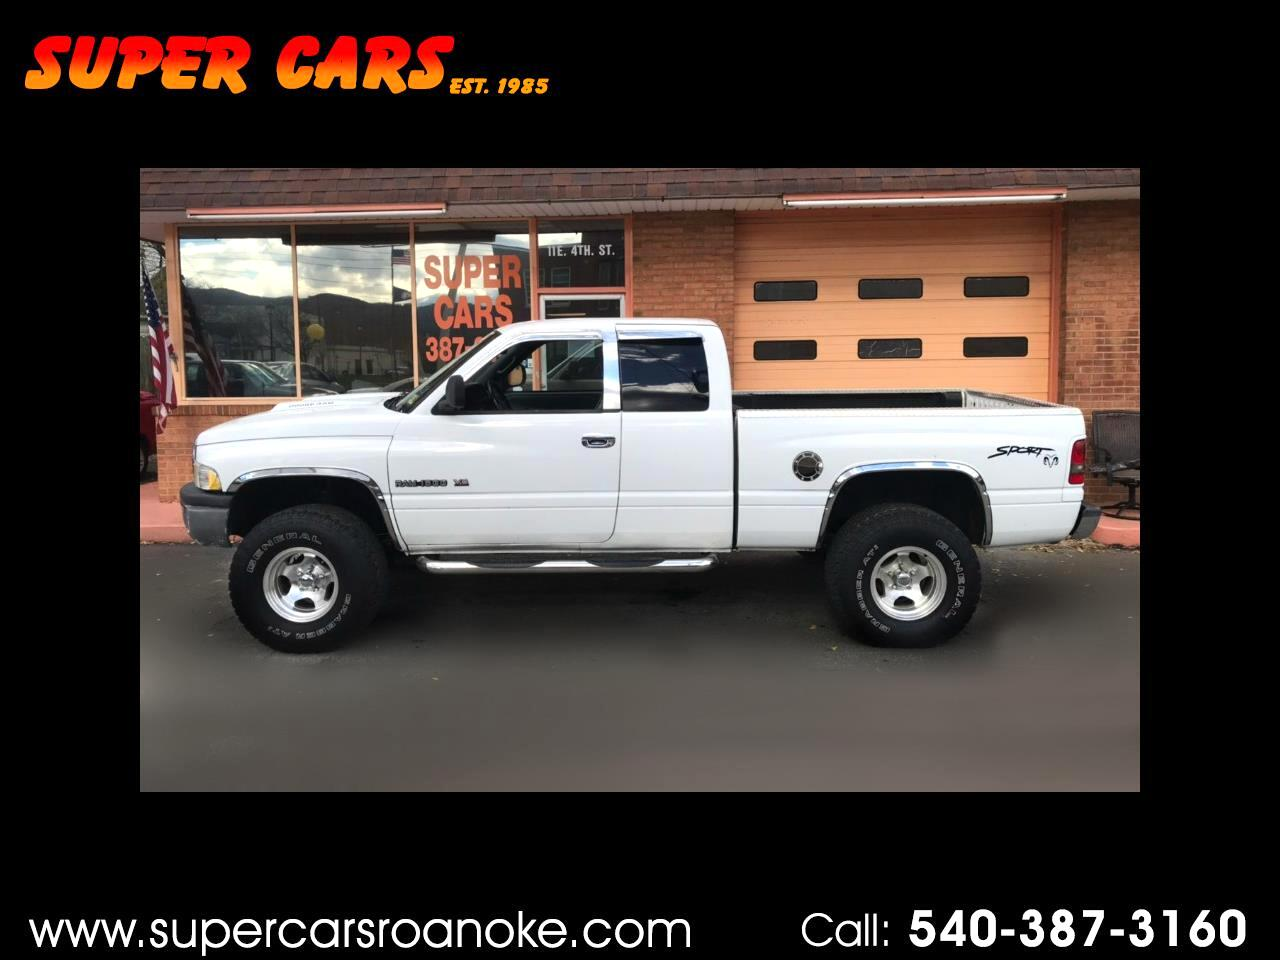 2000 Dodge Ram 1500 Club Cab Short Bed 4WD